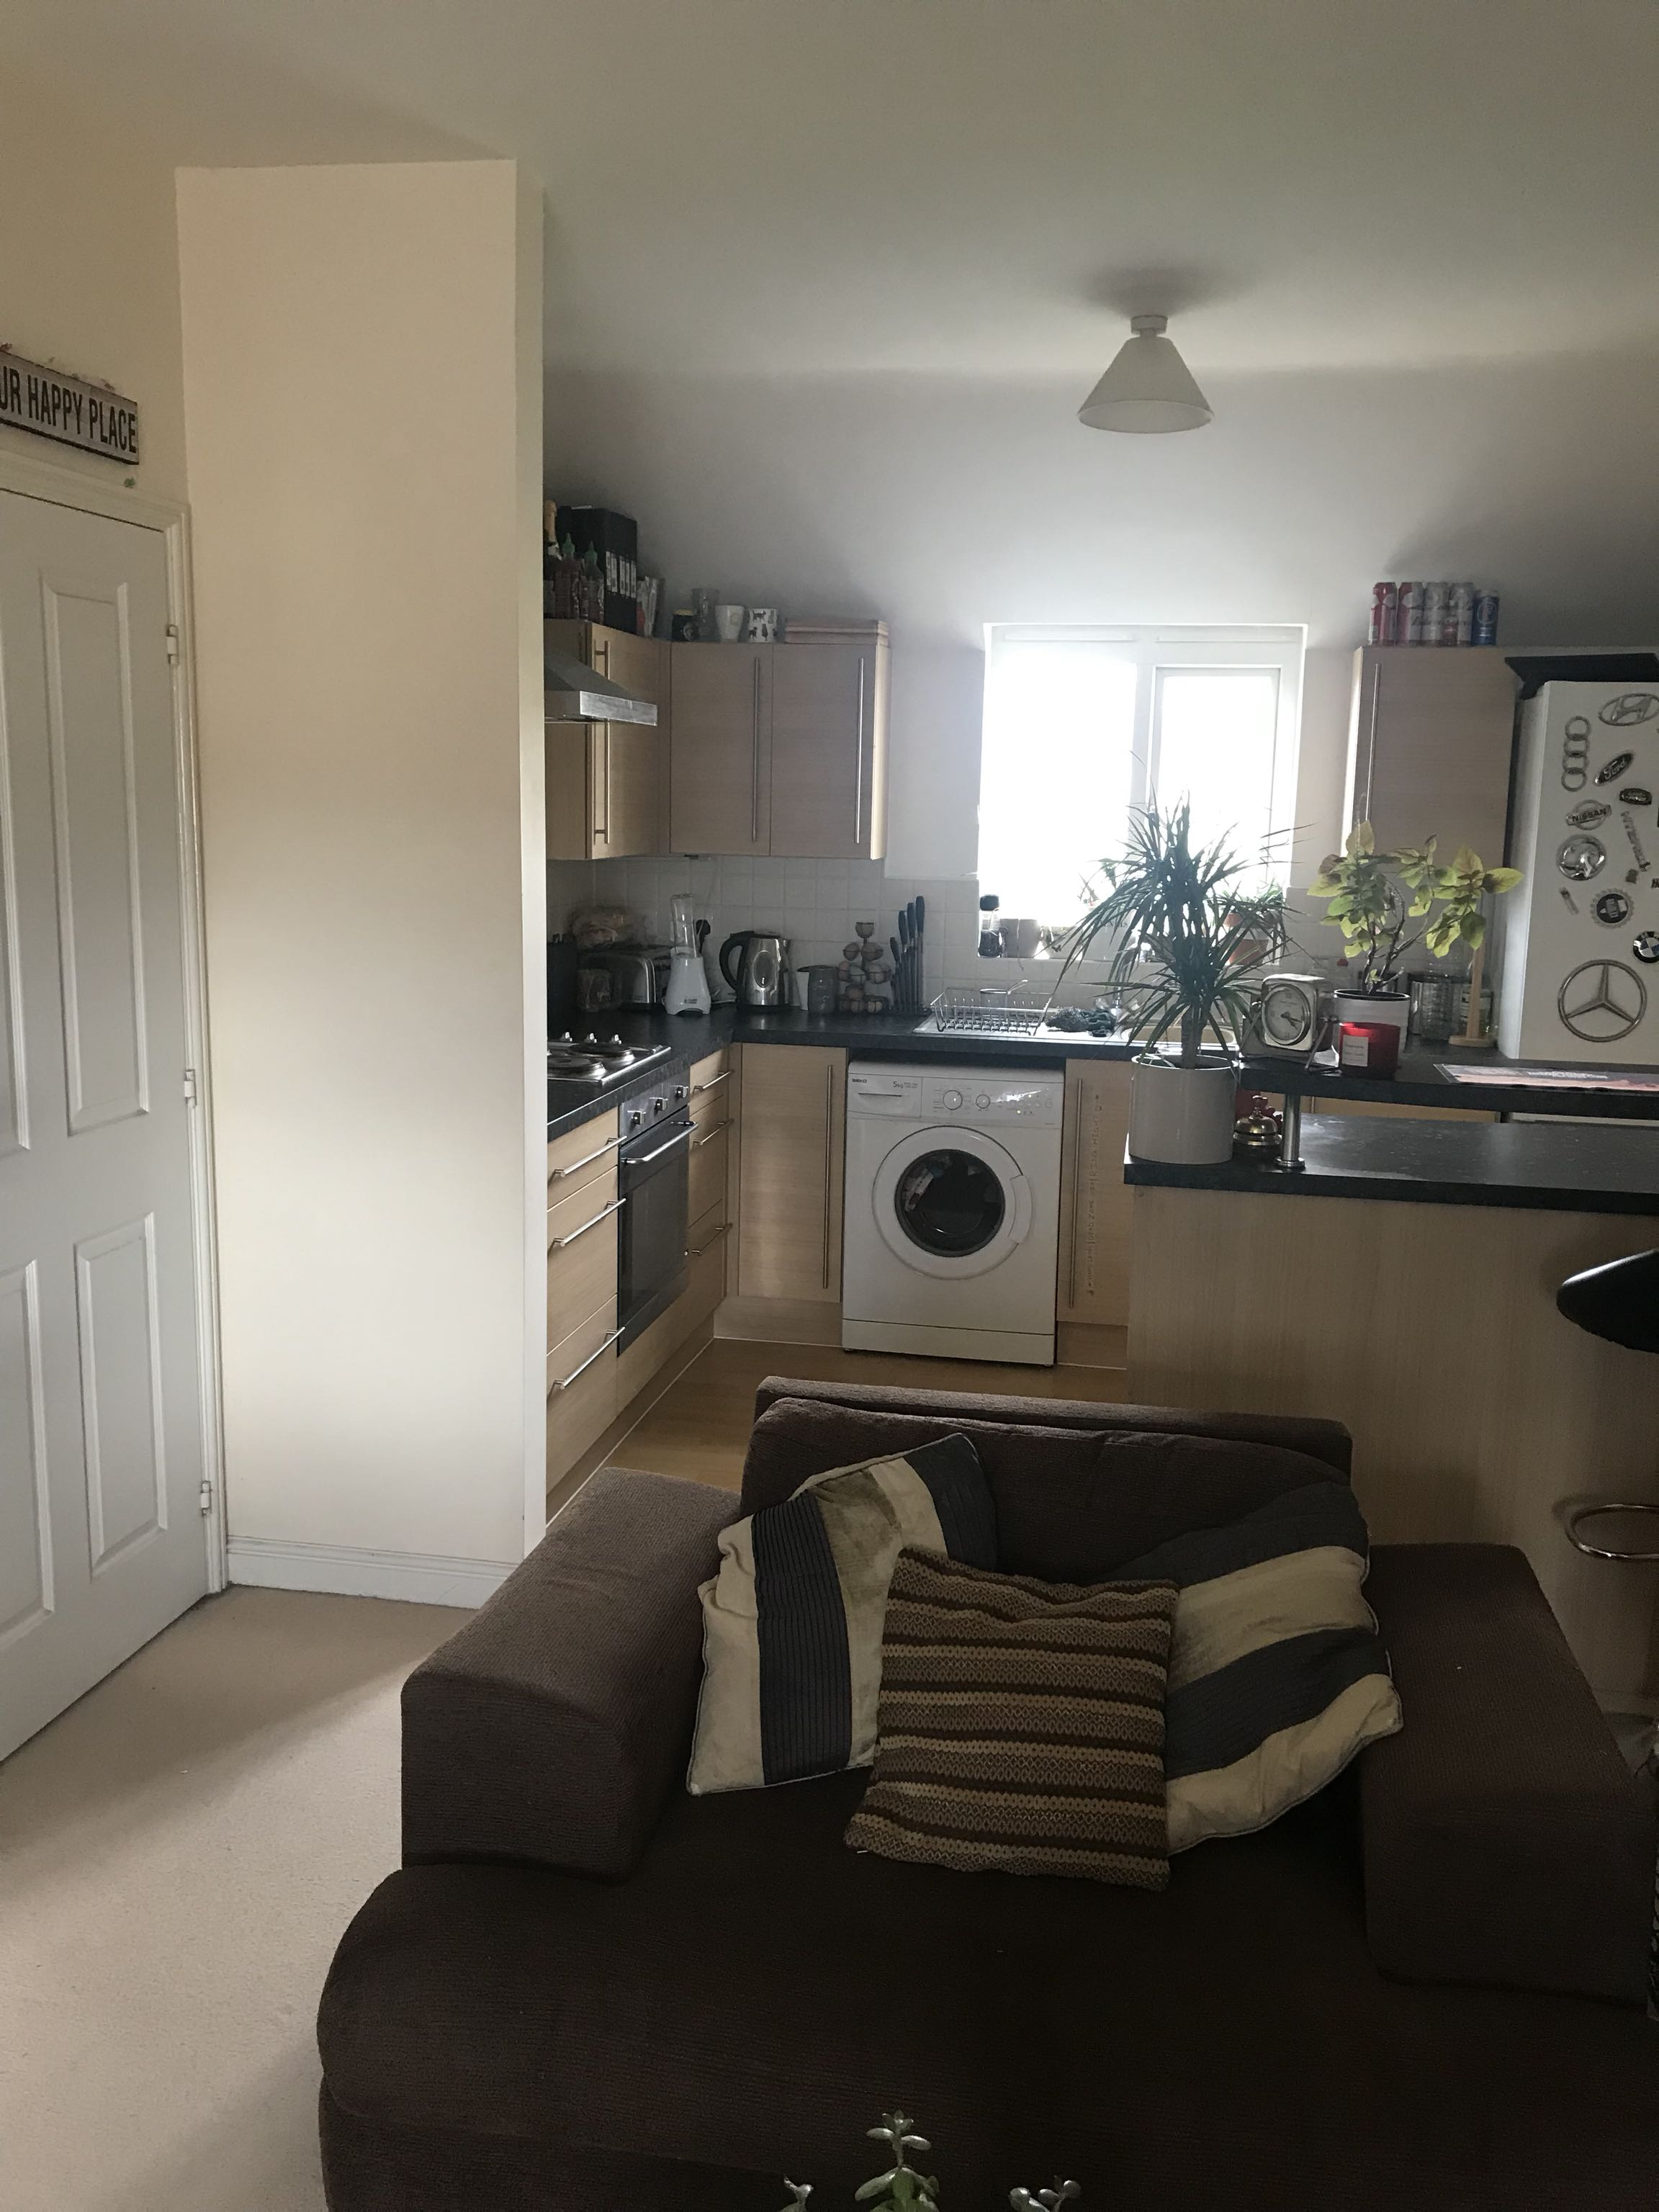 1 room in Rugby, Rugby, CV21 2JY RoomsLocal image